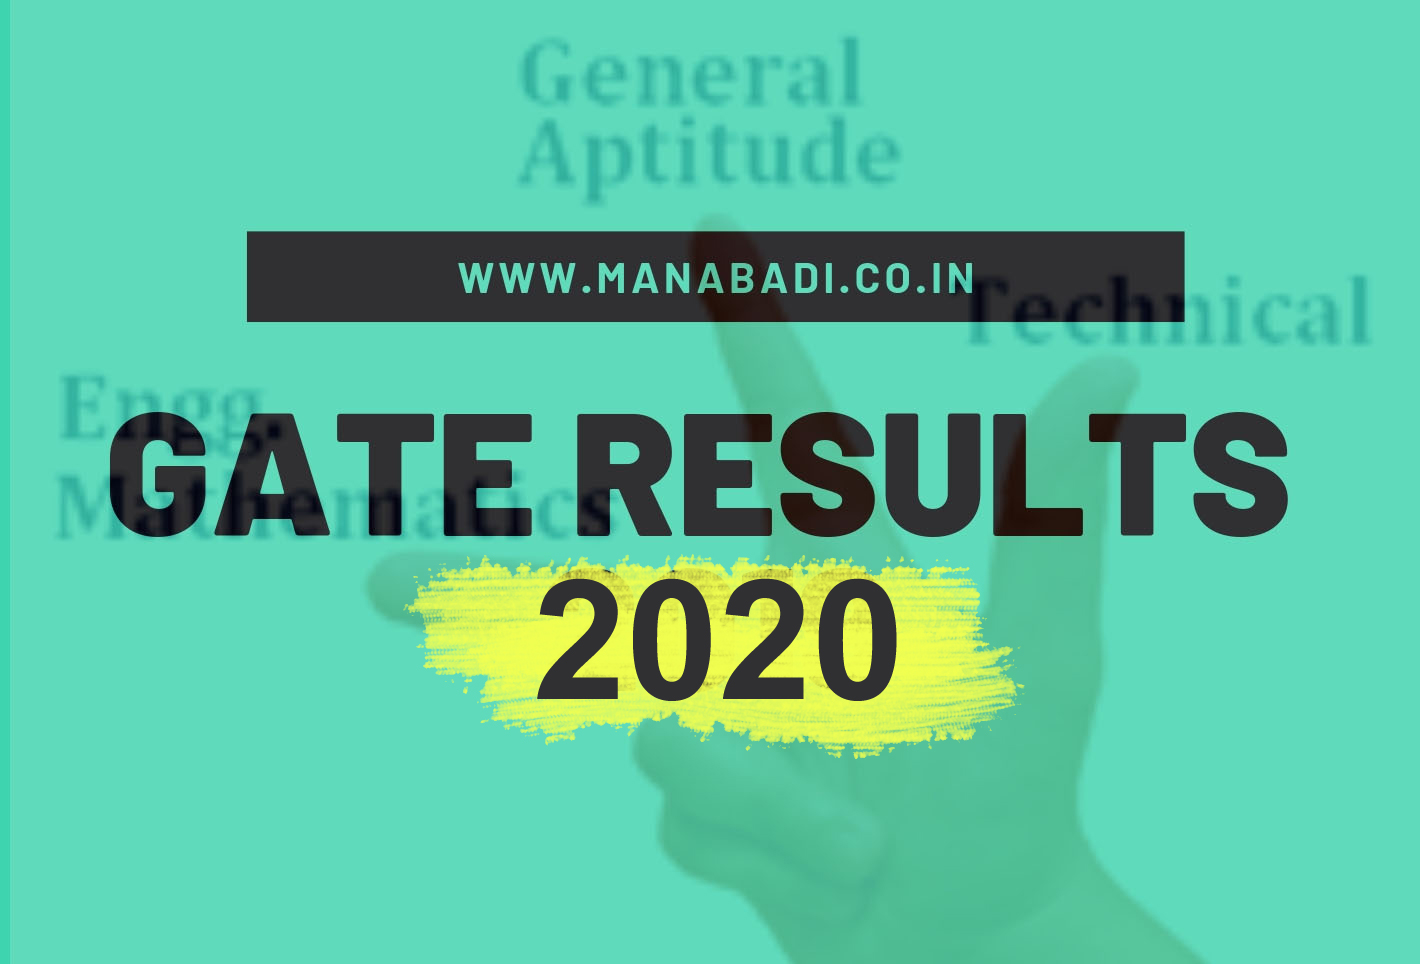 GATE 2020 Results